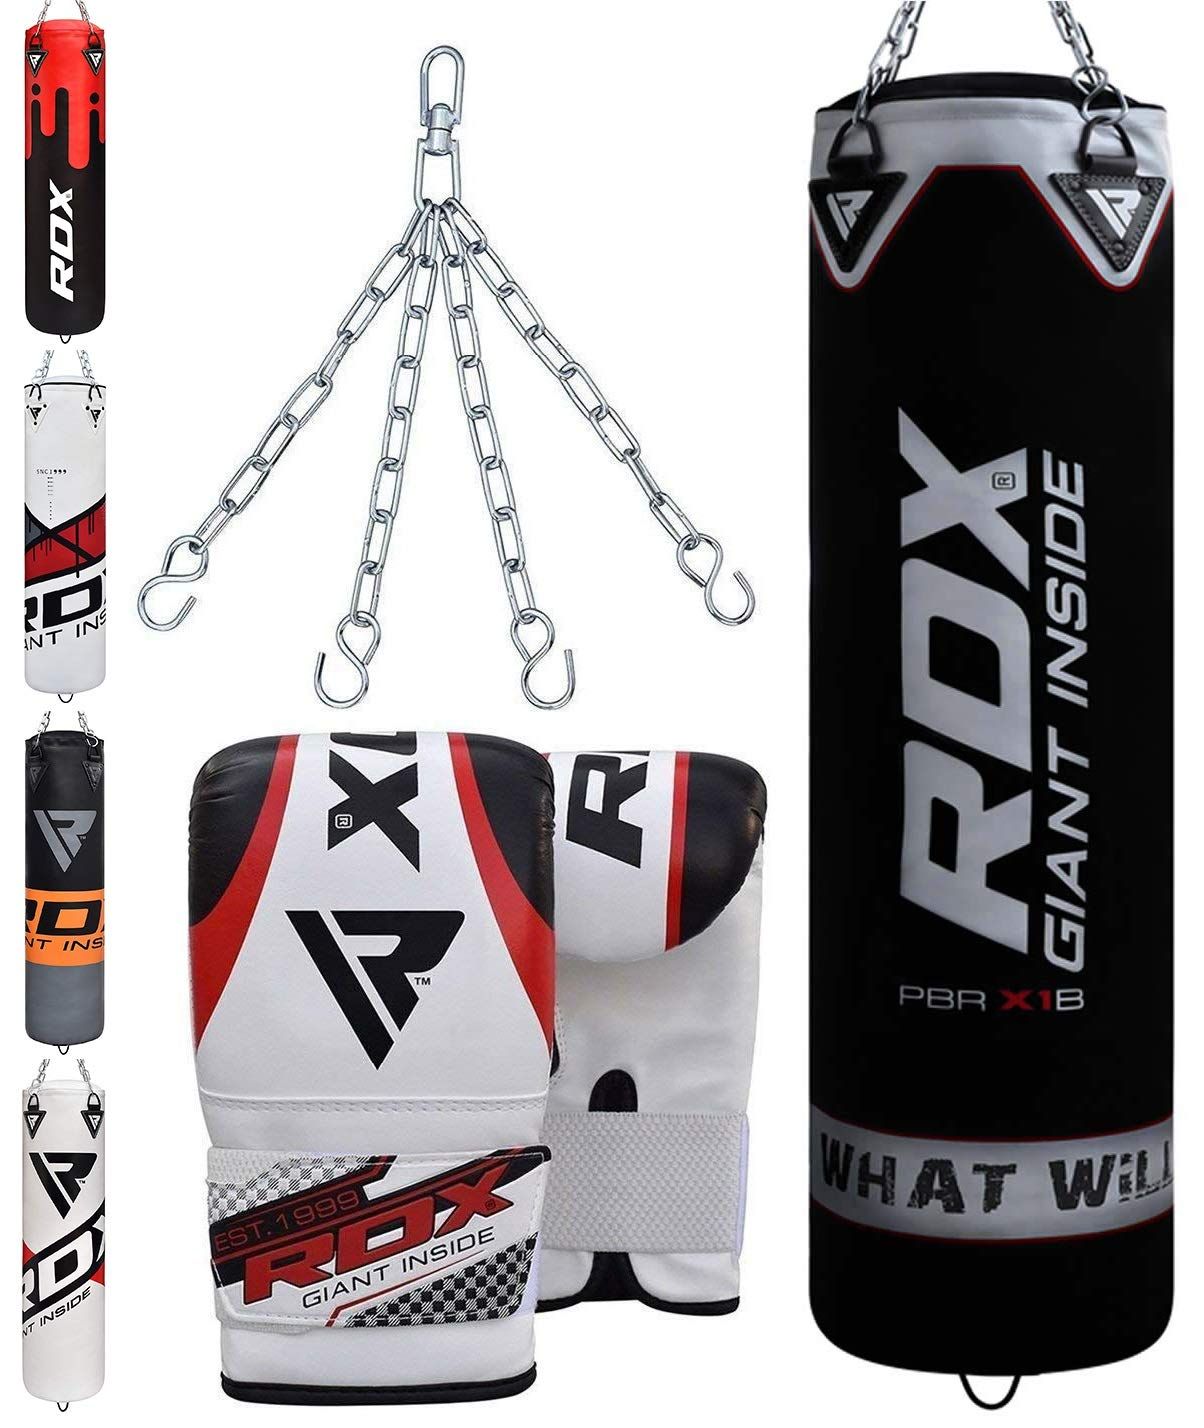 Kickboxing MMA Wall Bracket,Great for Grappling BJJ /& Taekwondo,/Muay Thai Comes in 4ft//5ft RDX 17PC Punch Bag for Boxing Training,Filled Heavy Bag Set with Punching Gloves Chain Karate